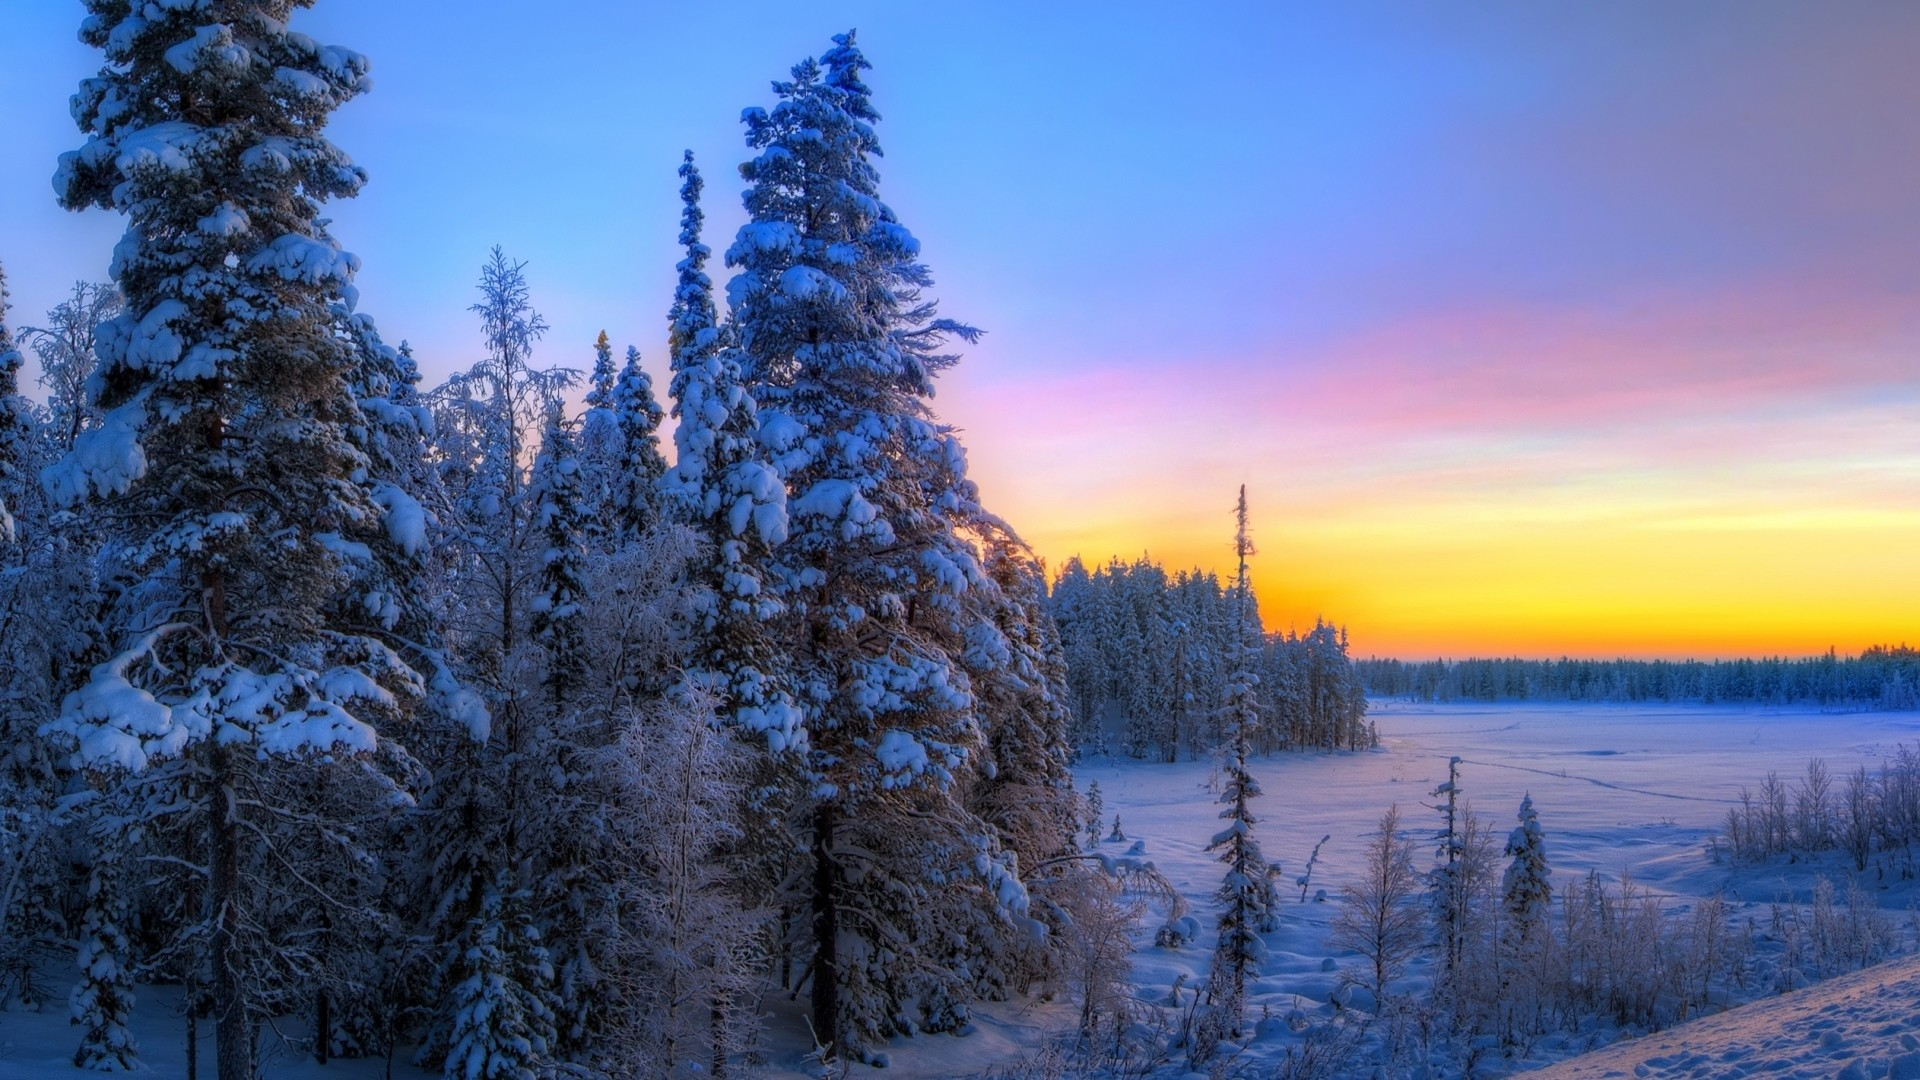 1080p wallpapers hd sunset winter trees landscape